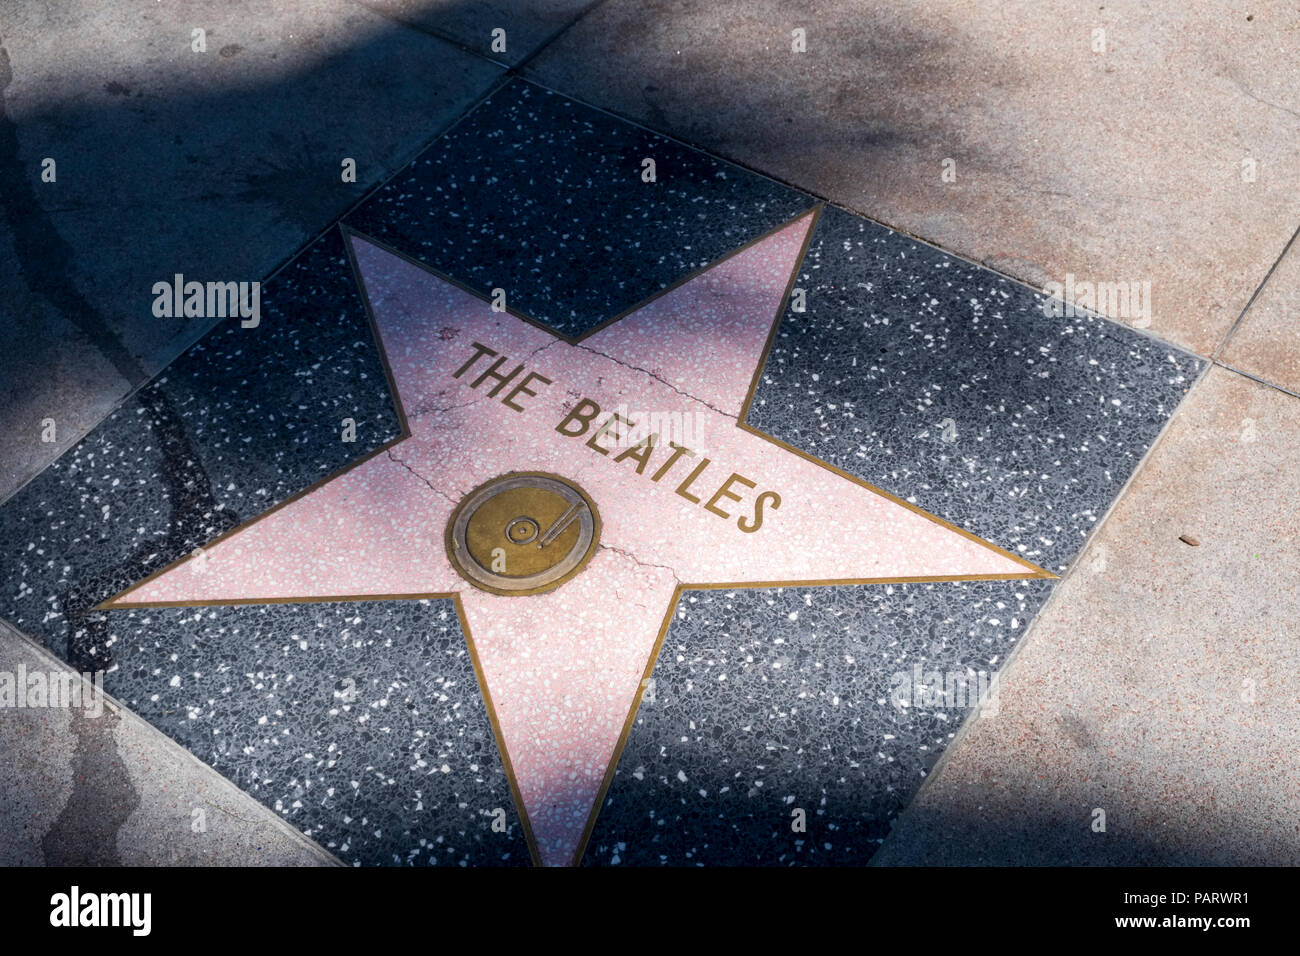 The Beatles star on the Walk of Fame, Hollywood Boulevard, Los Angeles, LA, California, USA - Stock Image